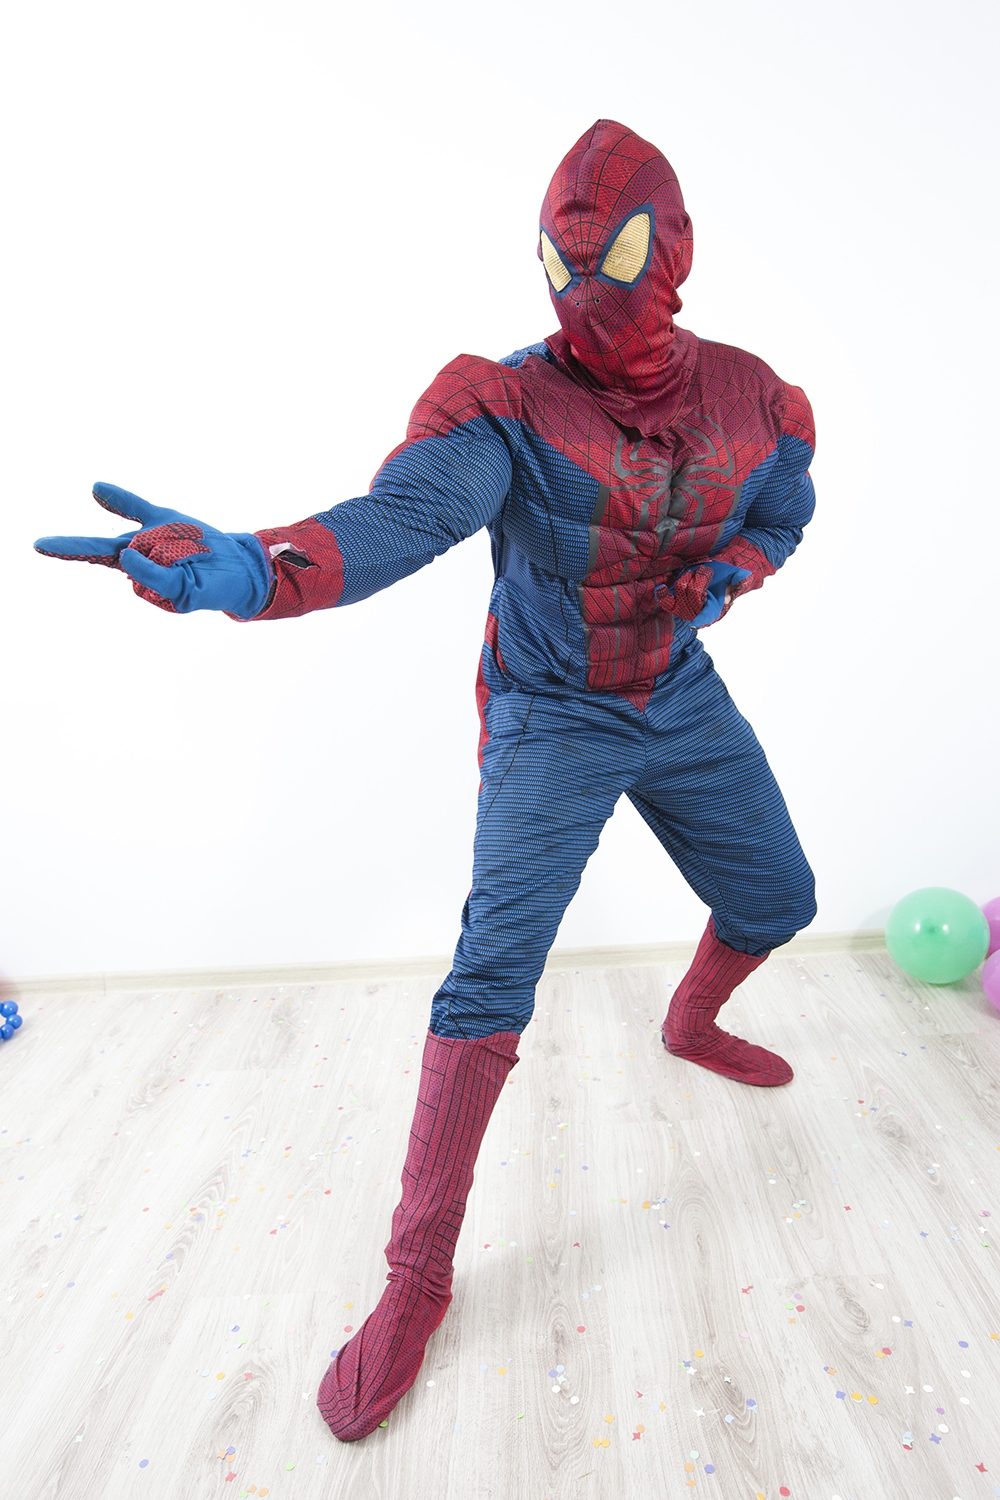 This Halloween, web-swing into action as Marvel Comic's most famous and beloved superhero with Spider-Man Halloween costumes! Toddlers, kids, teens, and adults alike can don Spidey's classic red-and-blue duds and be ready to roll, leap, climb walls, or go web-slinging across town.